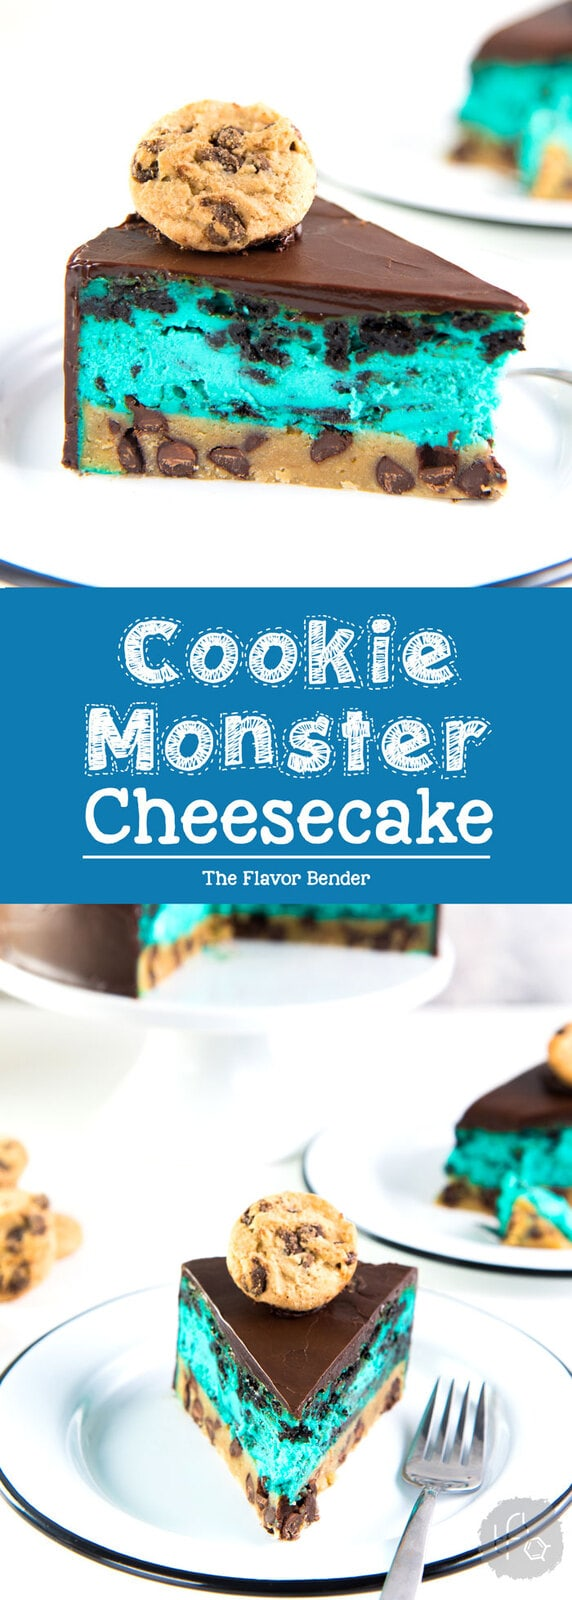 Cookie Monster Cheesecake - A fudgy chewy chocolate chip cookie blondie, topped with a creamy cookie and cream cheesecake loaded with Oreos and coated with a layer of chocolate ganache. Perfect dessert for cookie lovers. From the Secret Layer Cakes cookbook. #Cheesecake #SecretLayerCakes #CookiesandCream #Blondie